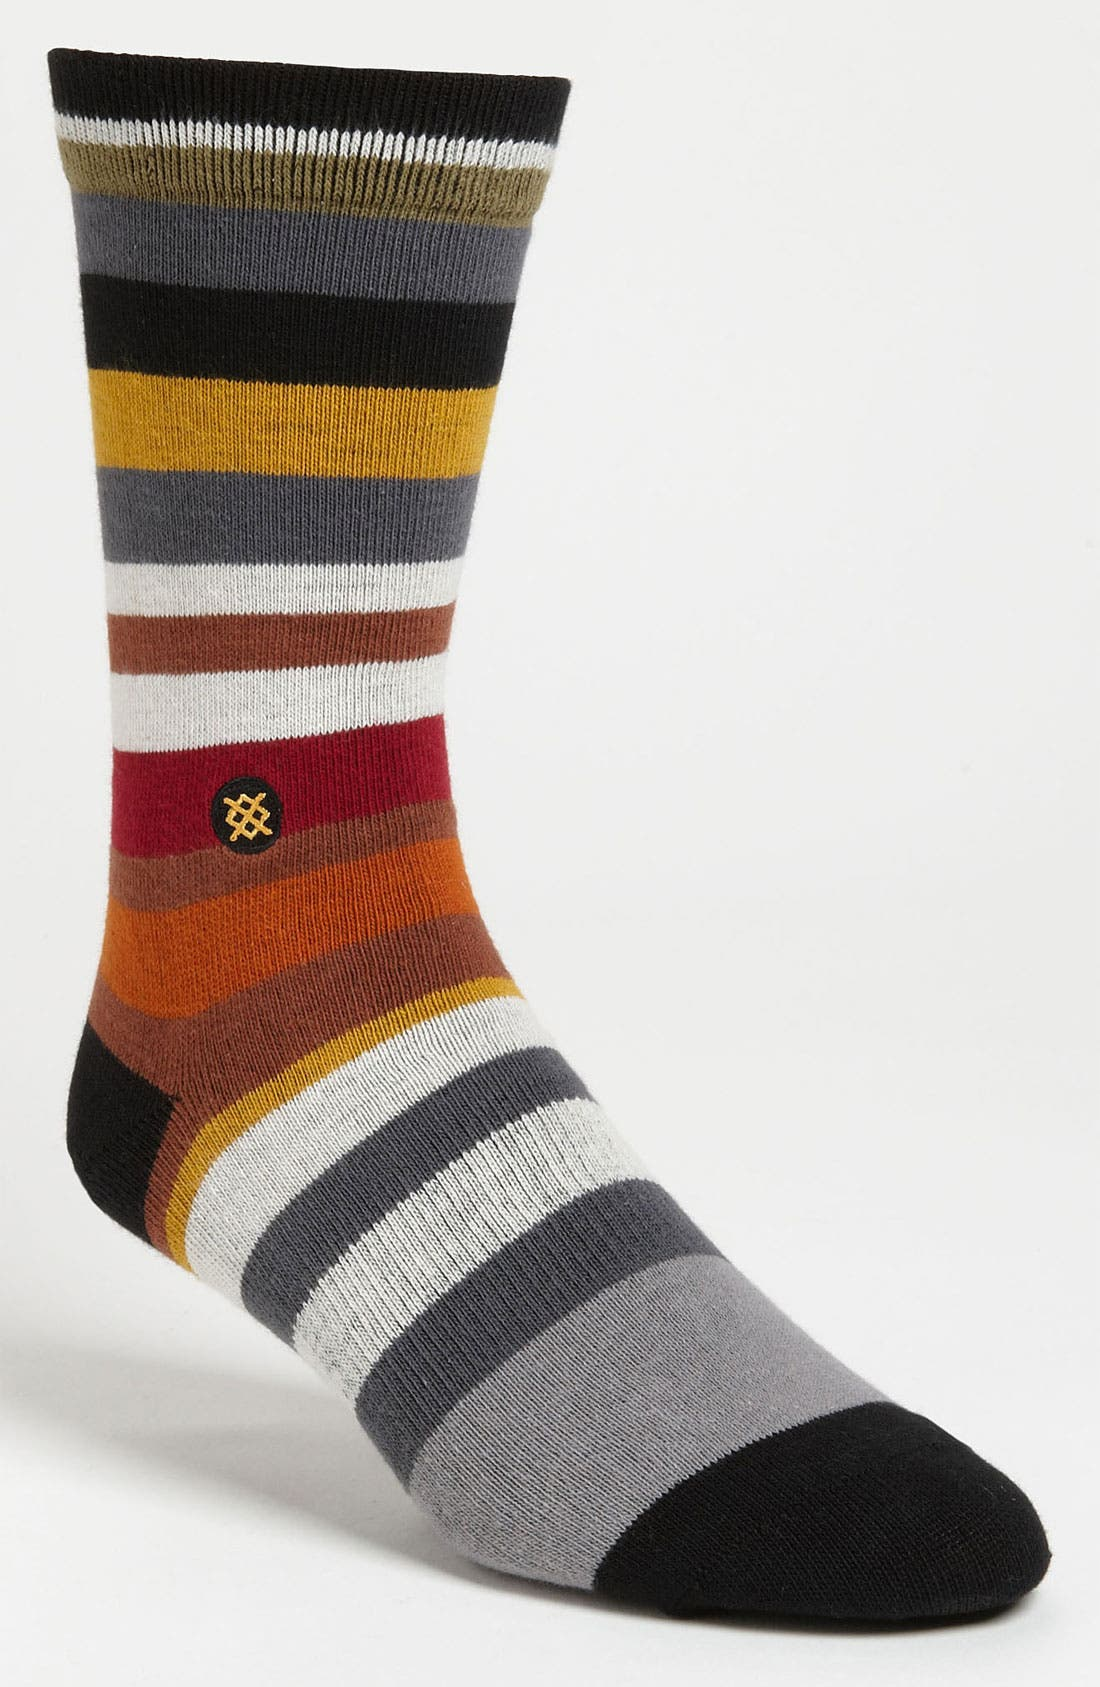 Main Image - Stance 'Cannon' Socks